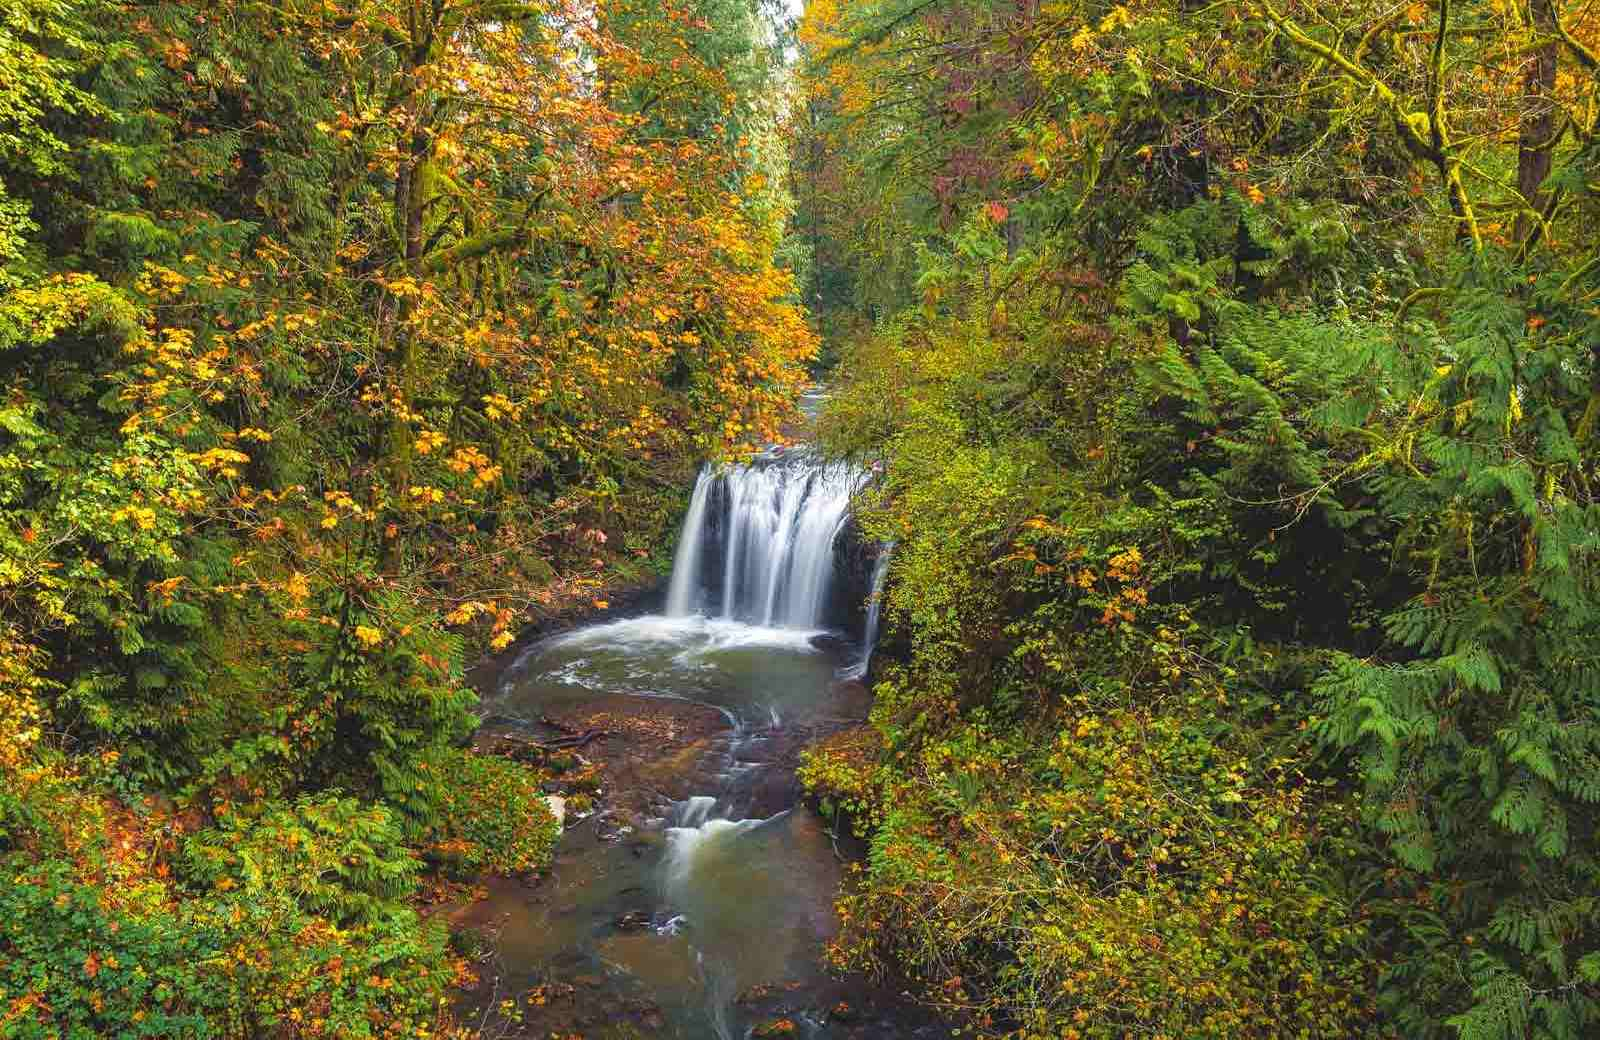 Clackamas Falls is an Oregon waterfall that's especially beautiful during fall.